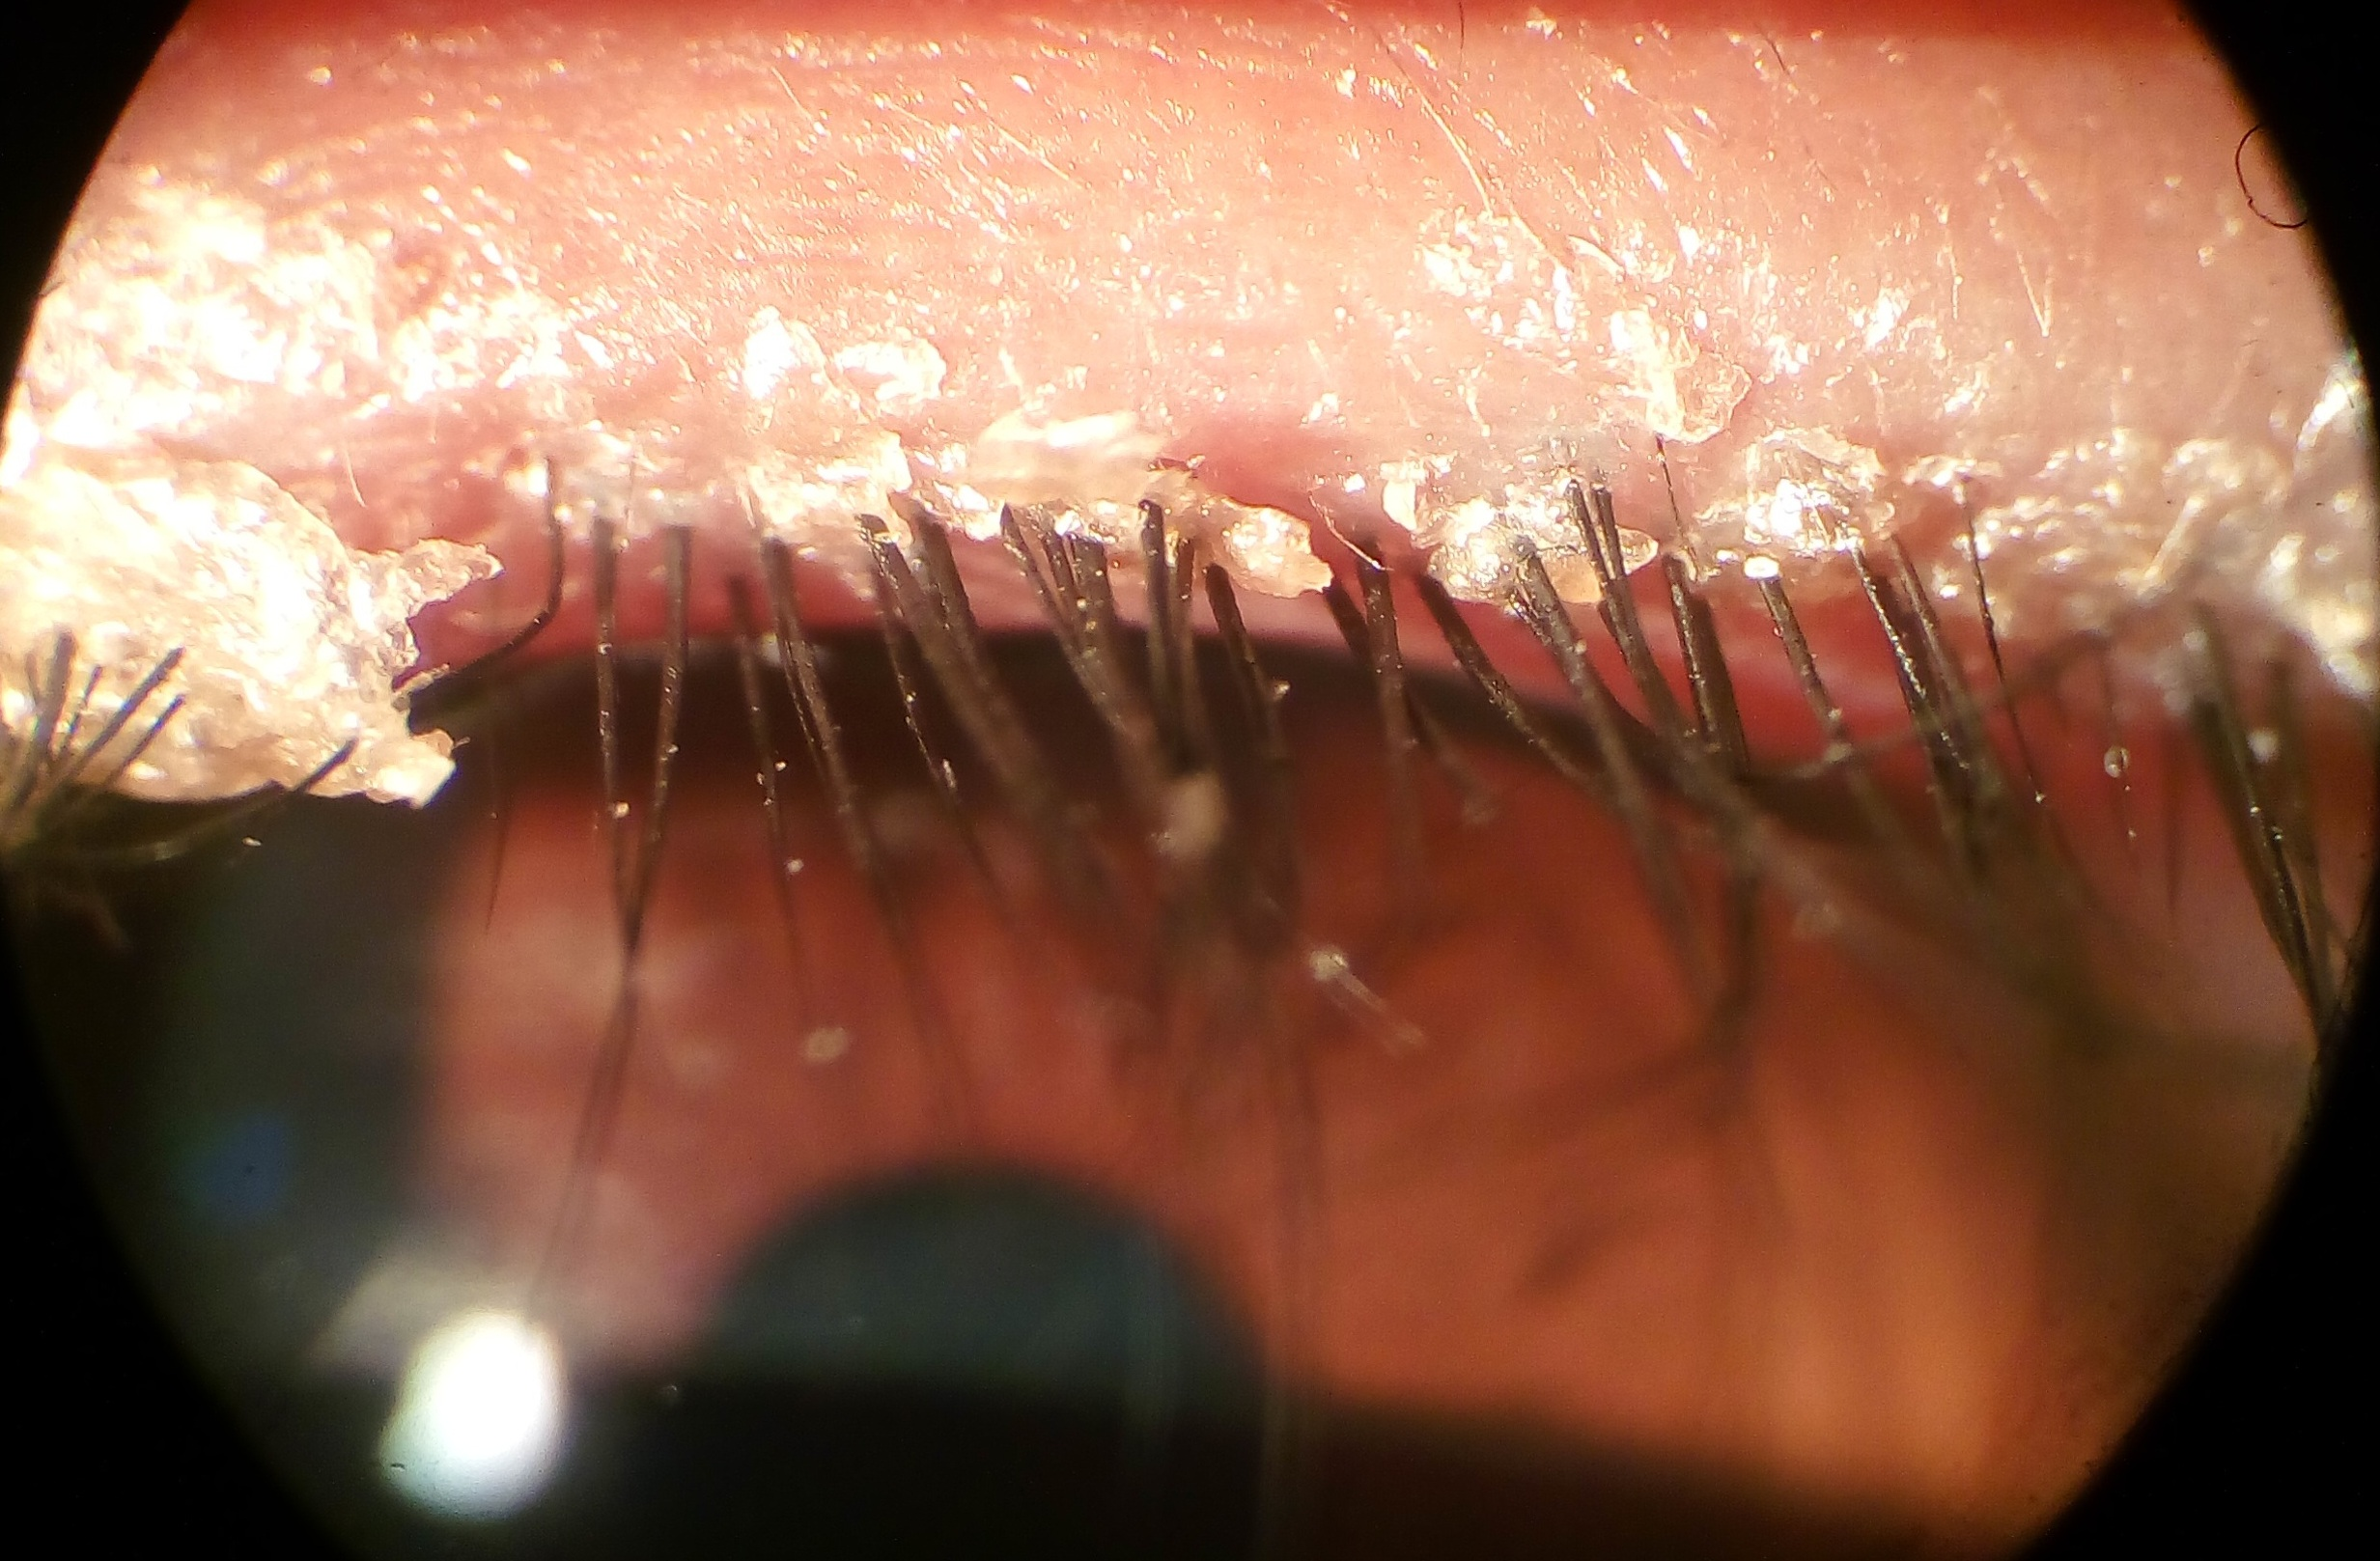 Scaling and bacterial debris at the base of the eyelashes